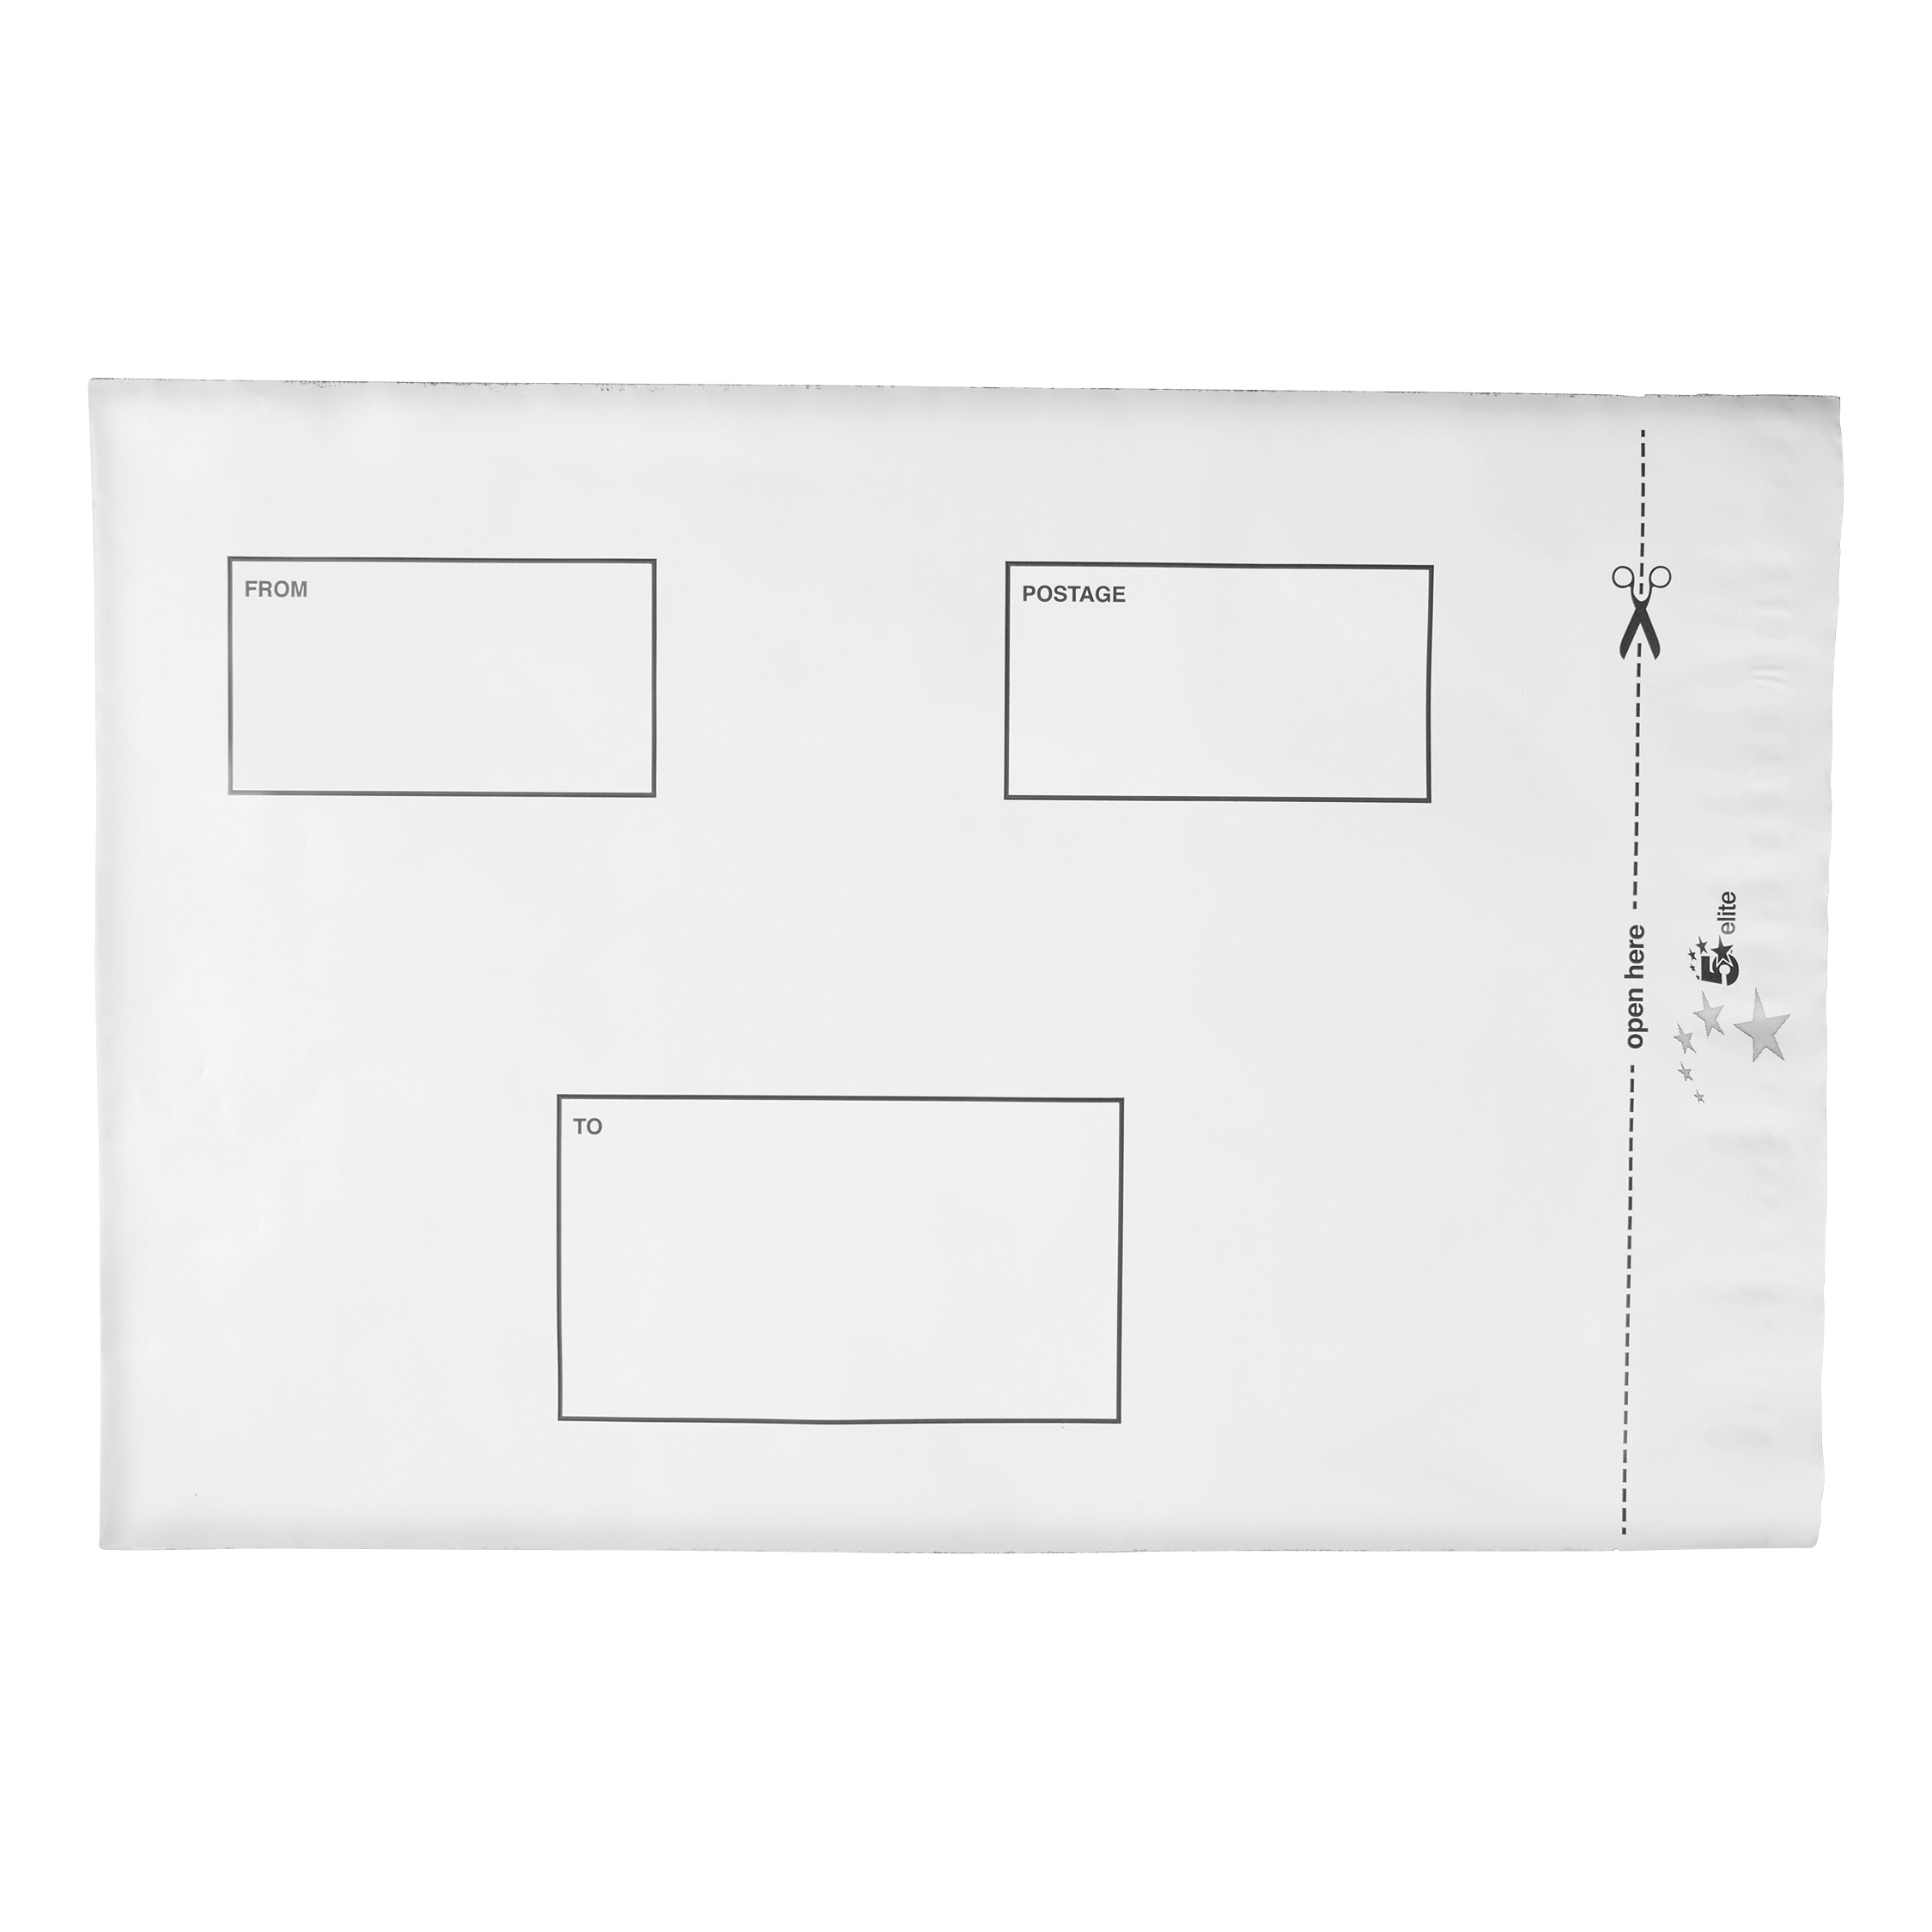 5 Star Elite Envelopes ExtraStrong Waterproof Polythene Peel & Seal Opaque 250x320mm&50mm Flap Pack 100